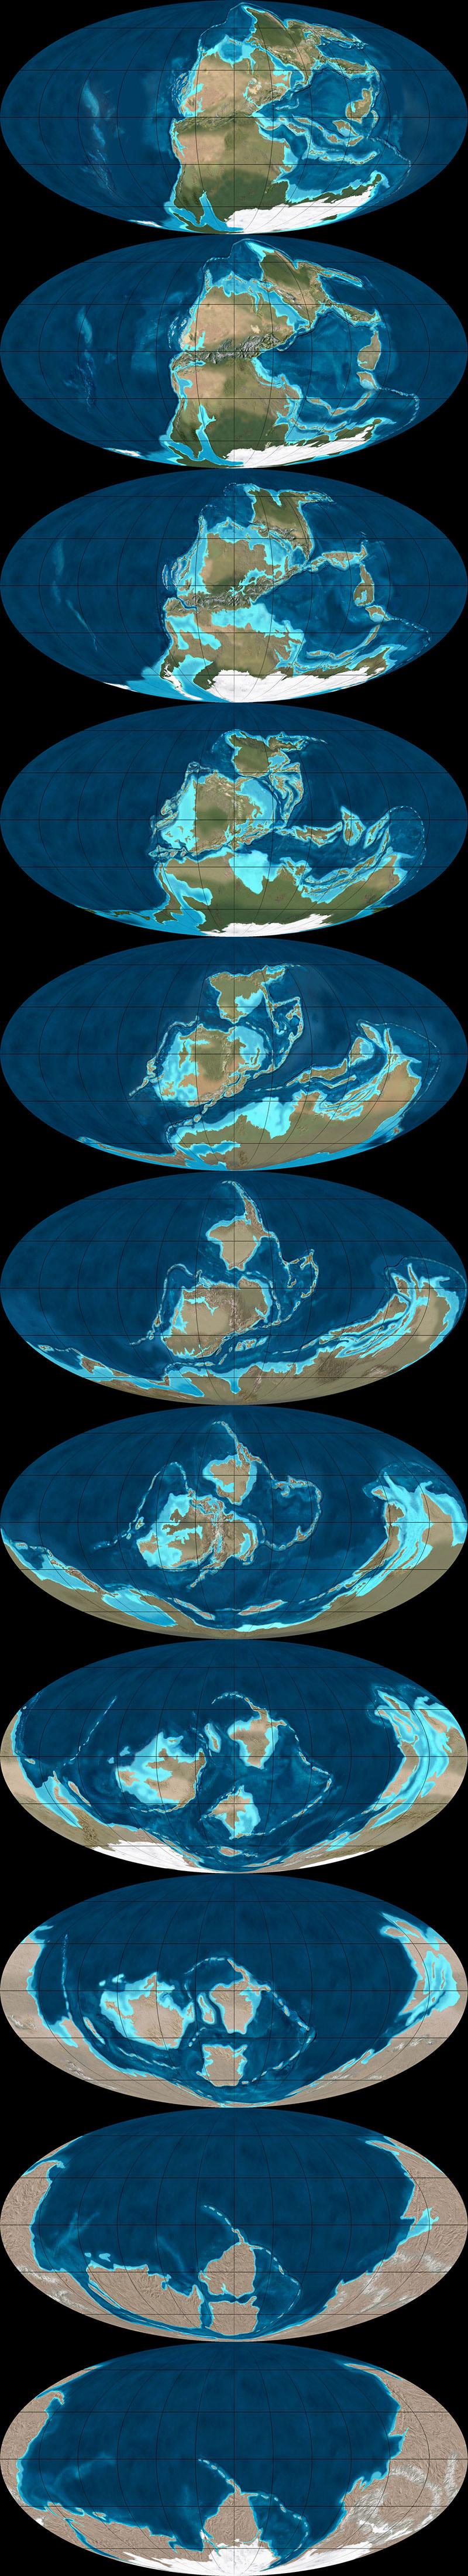 What Did the Continents Look Like Millions of Years Ago